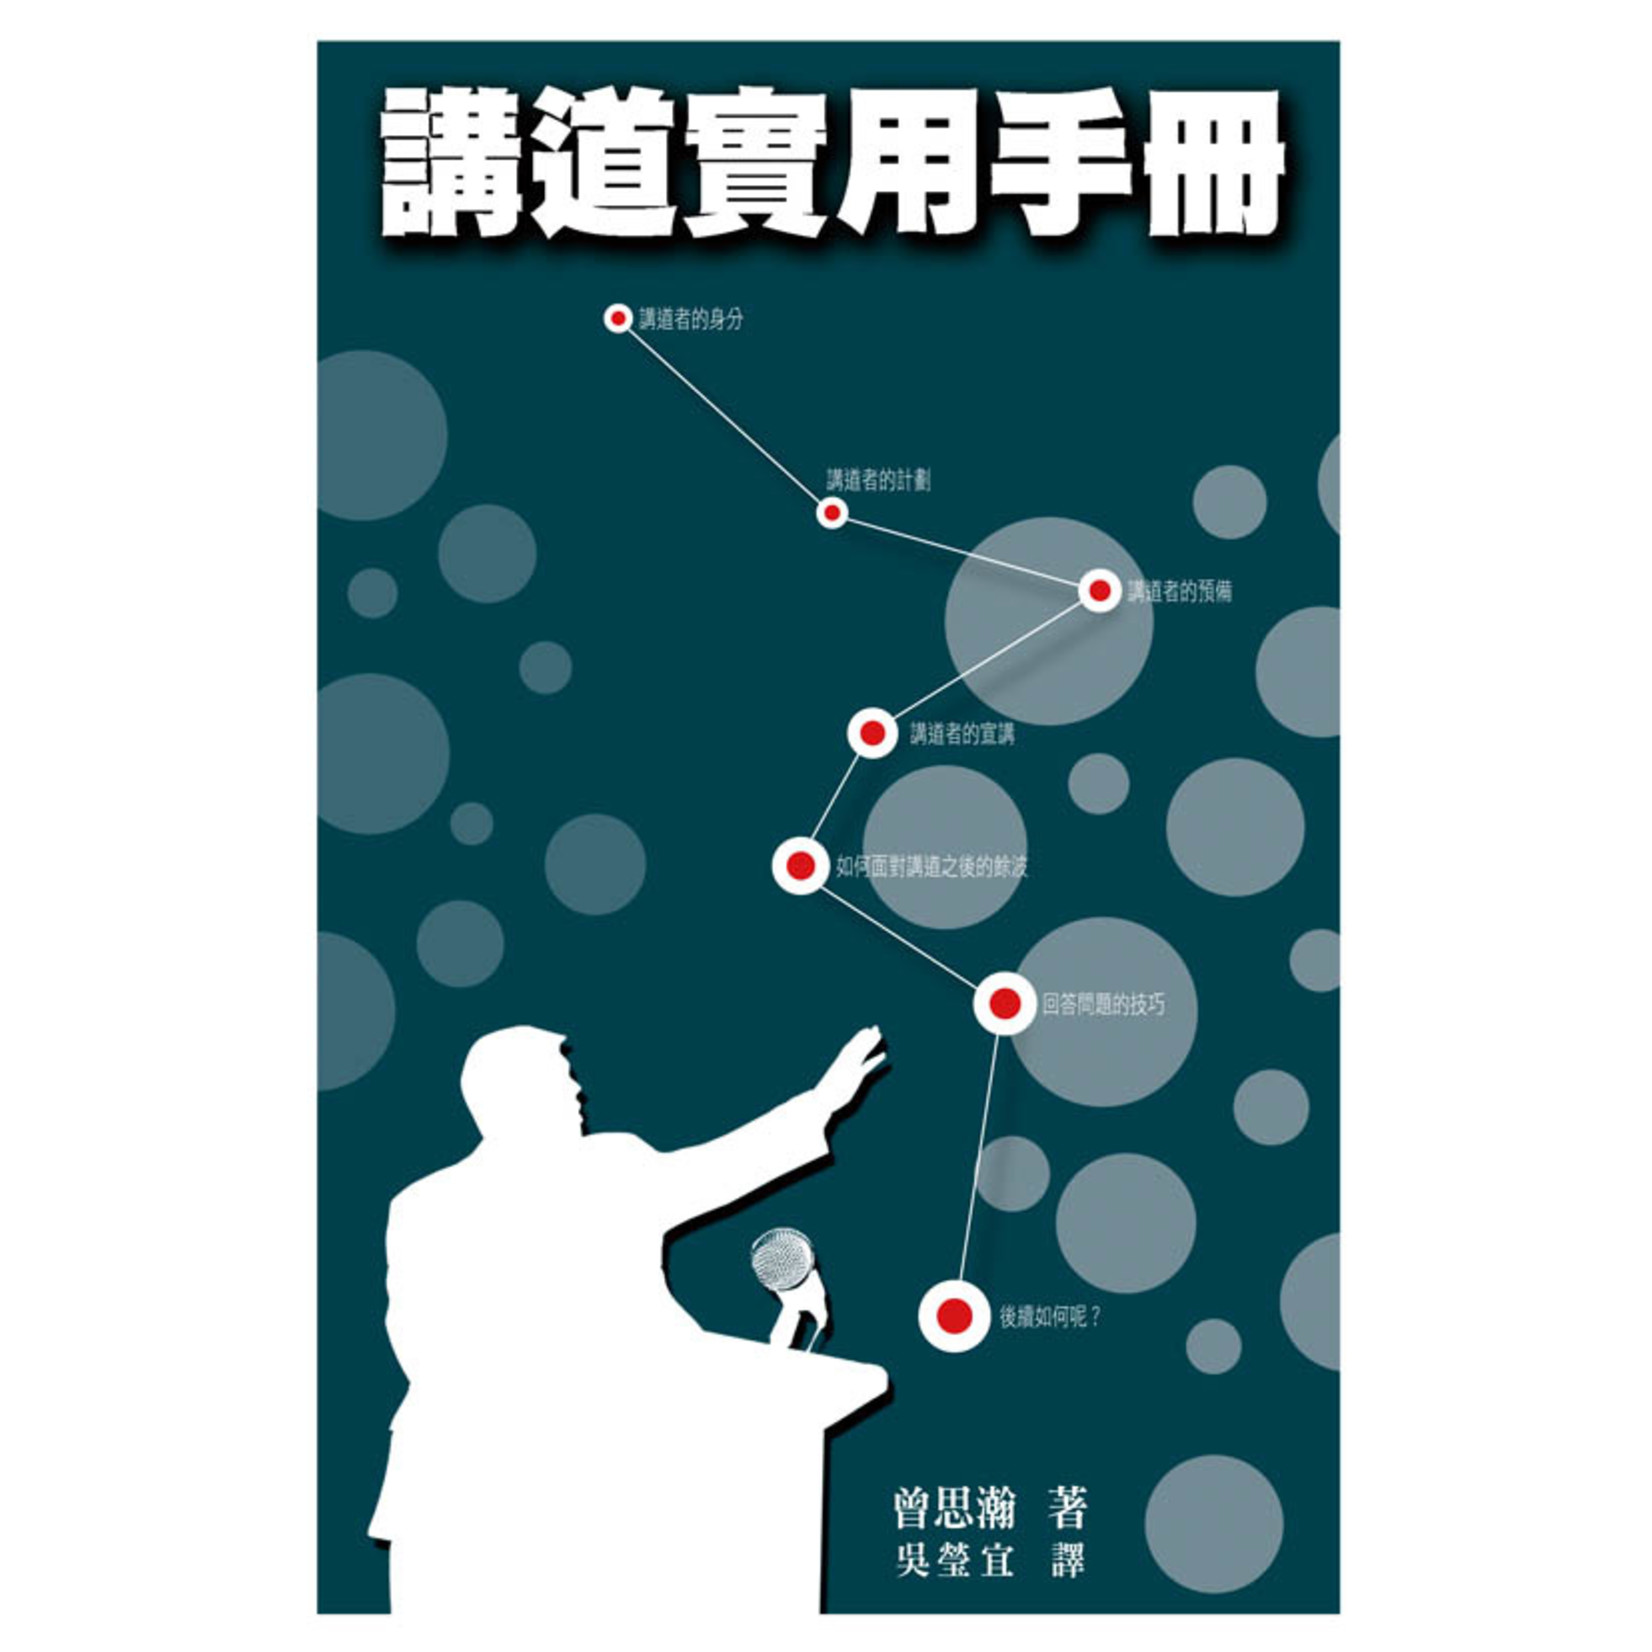 天道書樓 Tien Dao Publishing House 講道實用手冊 Practical Modern Preaching Handbook